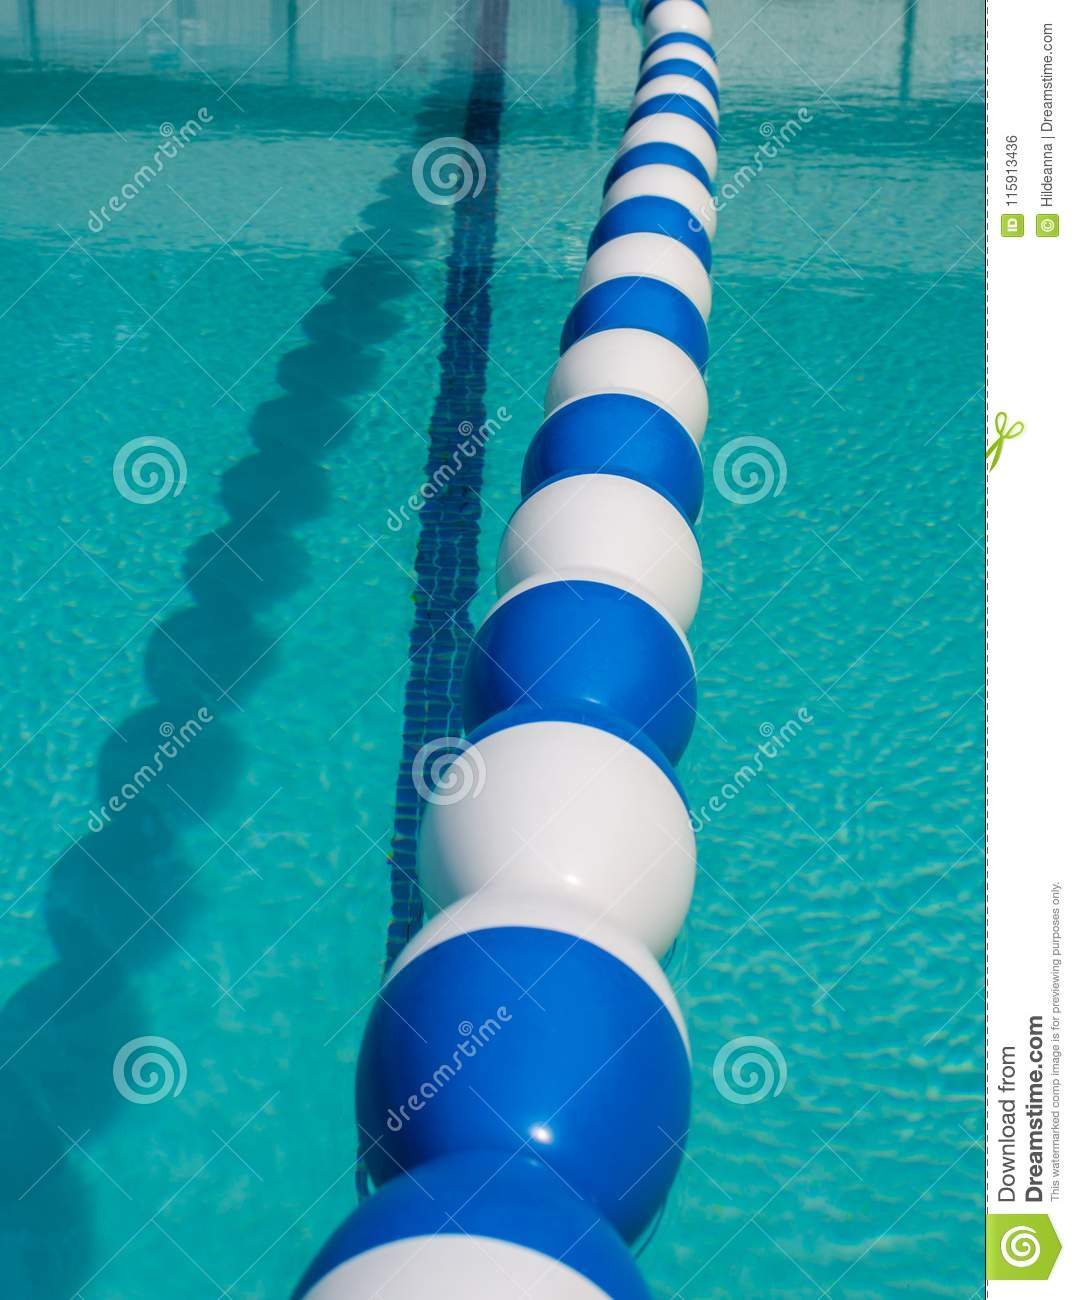 Swimming Pool Divider Floats. Stock Photo - Image of float ...